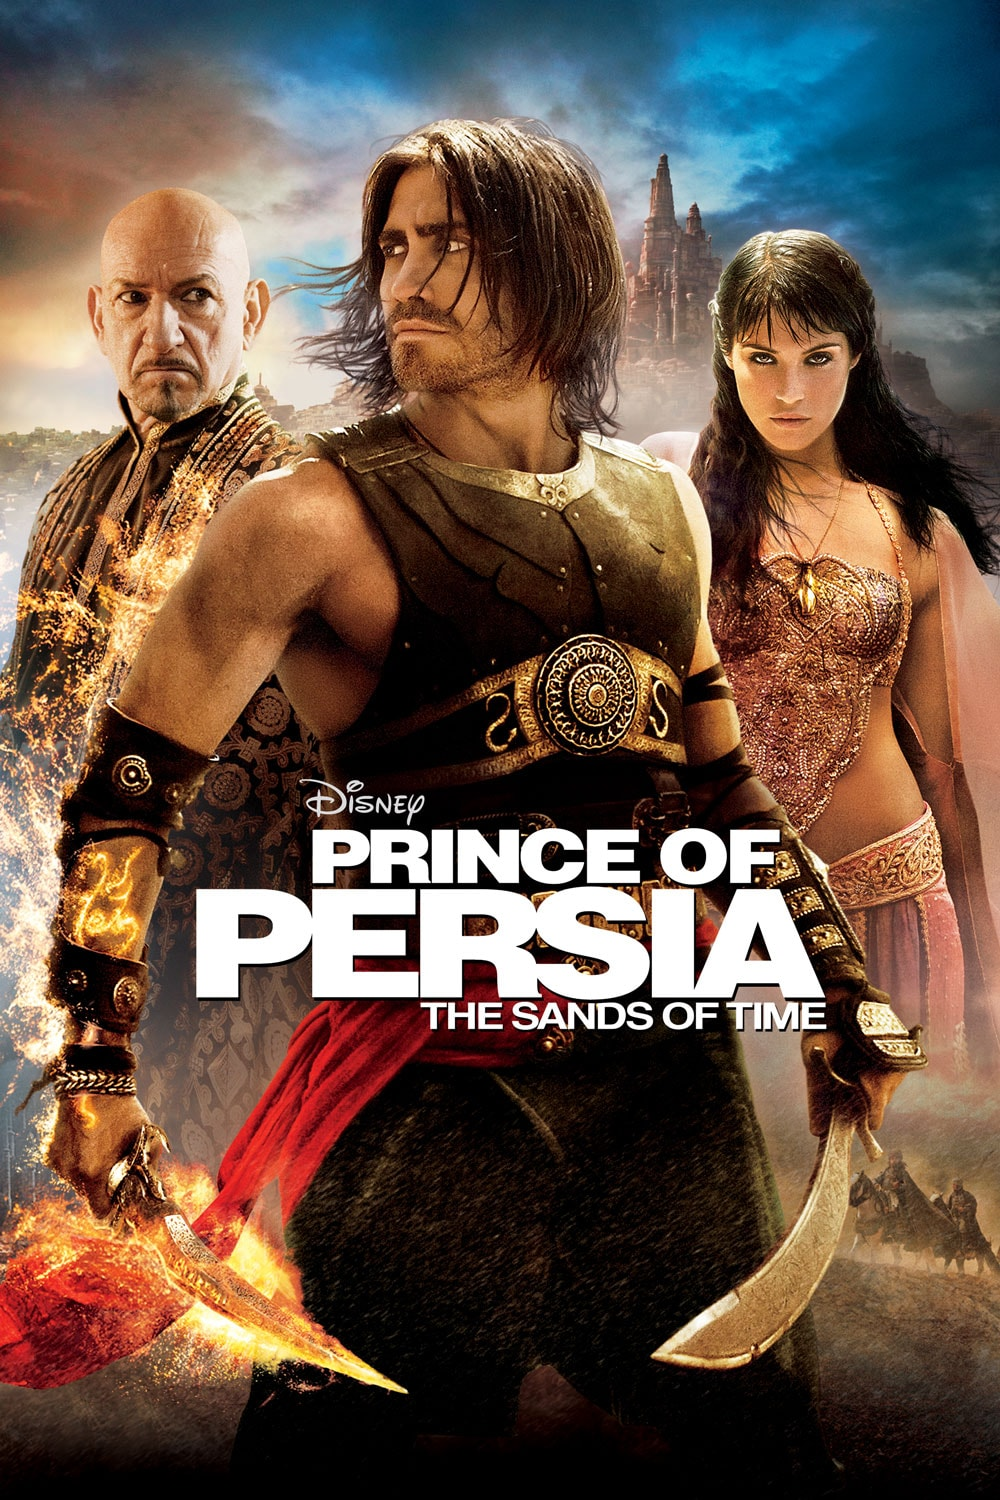 Prince of Persia film: The Sands of Time: the actors and plot of the cult film adaptation of a computer game 83